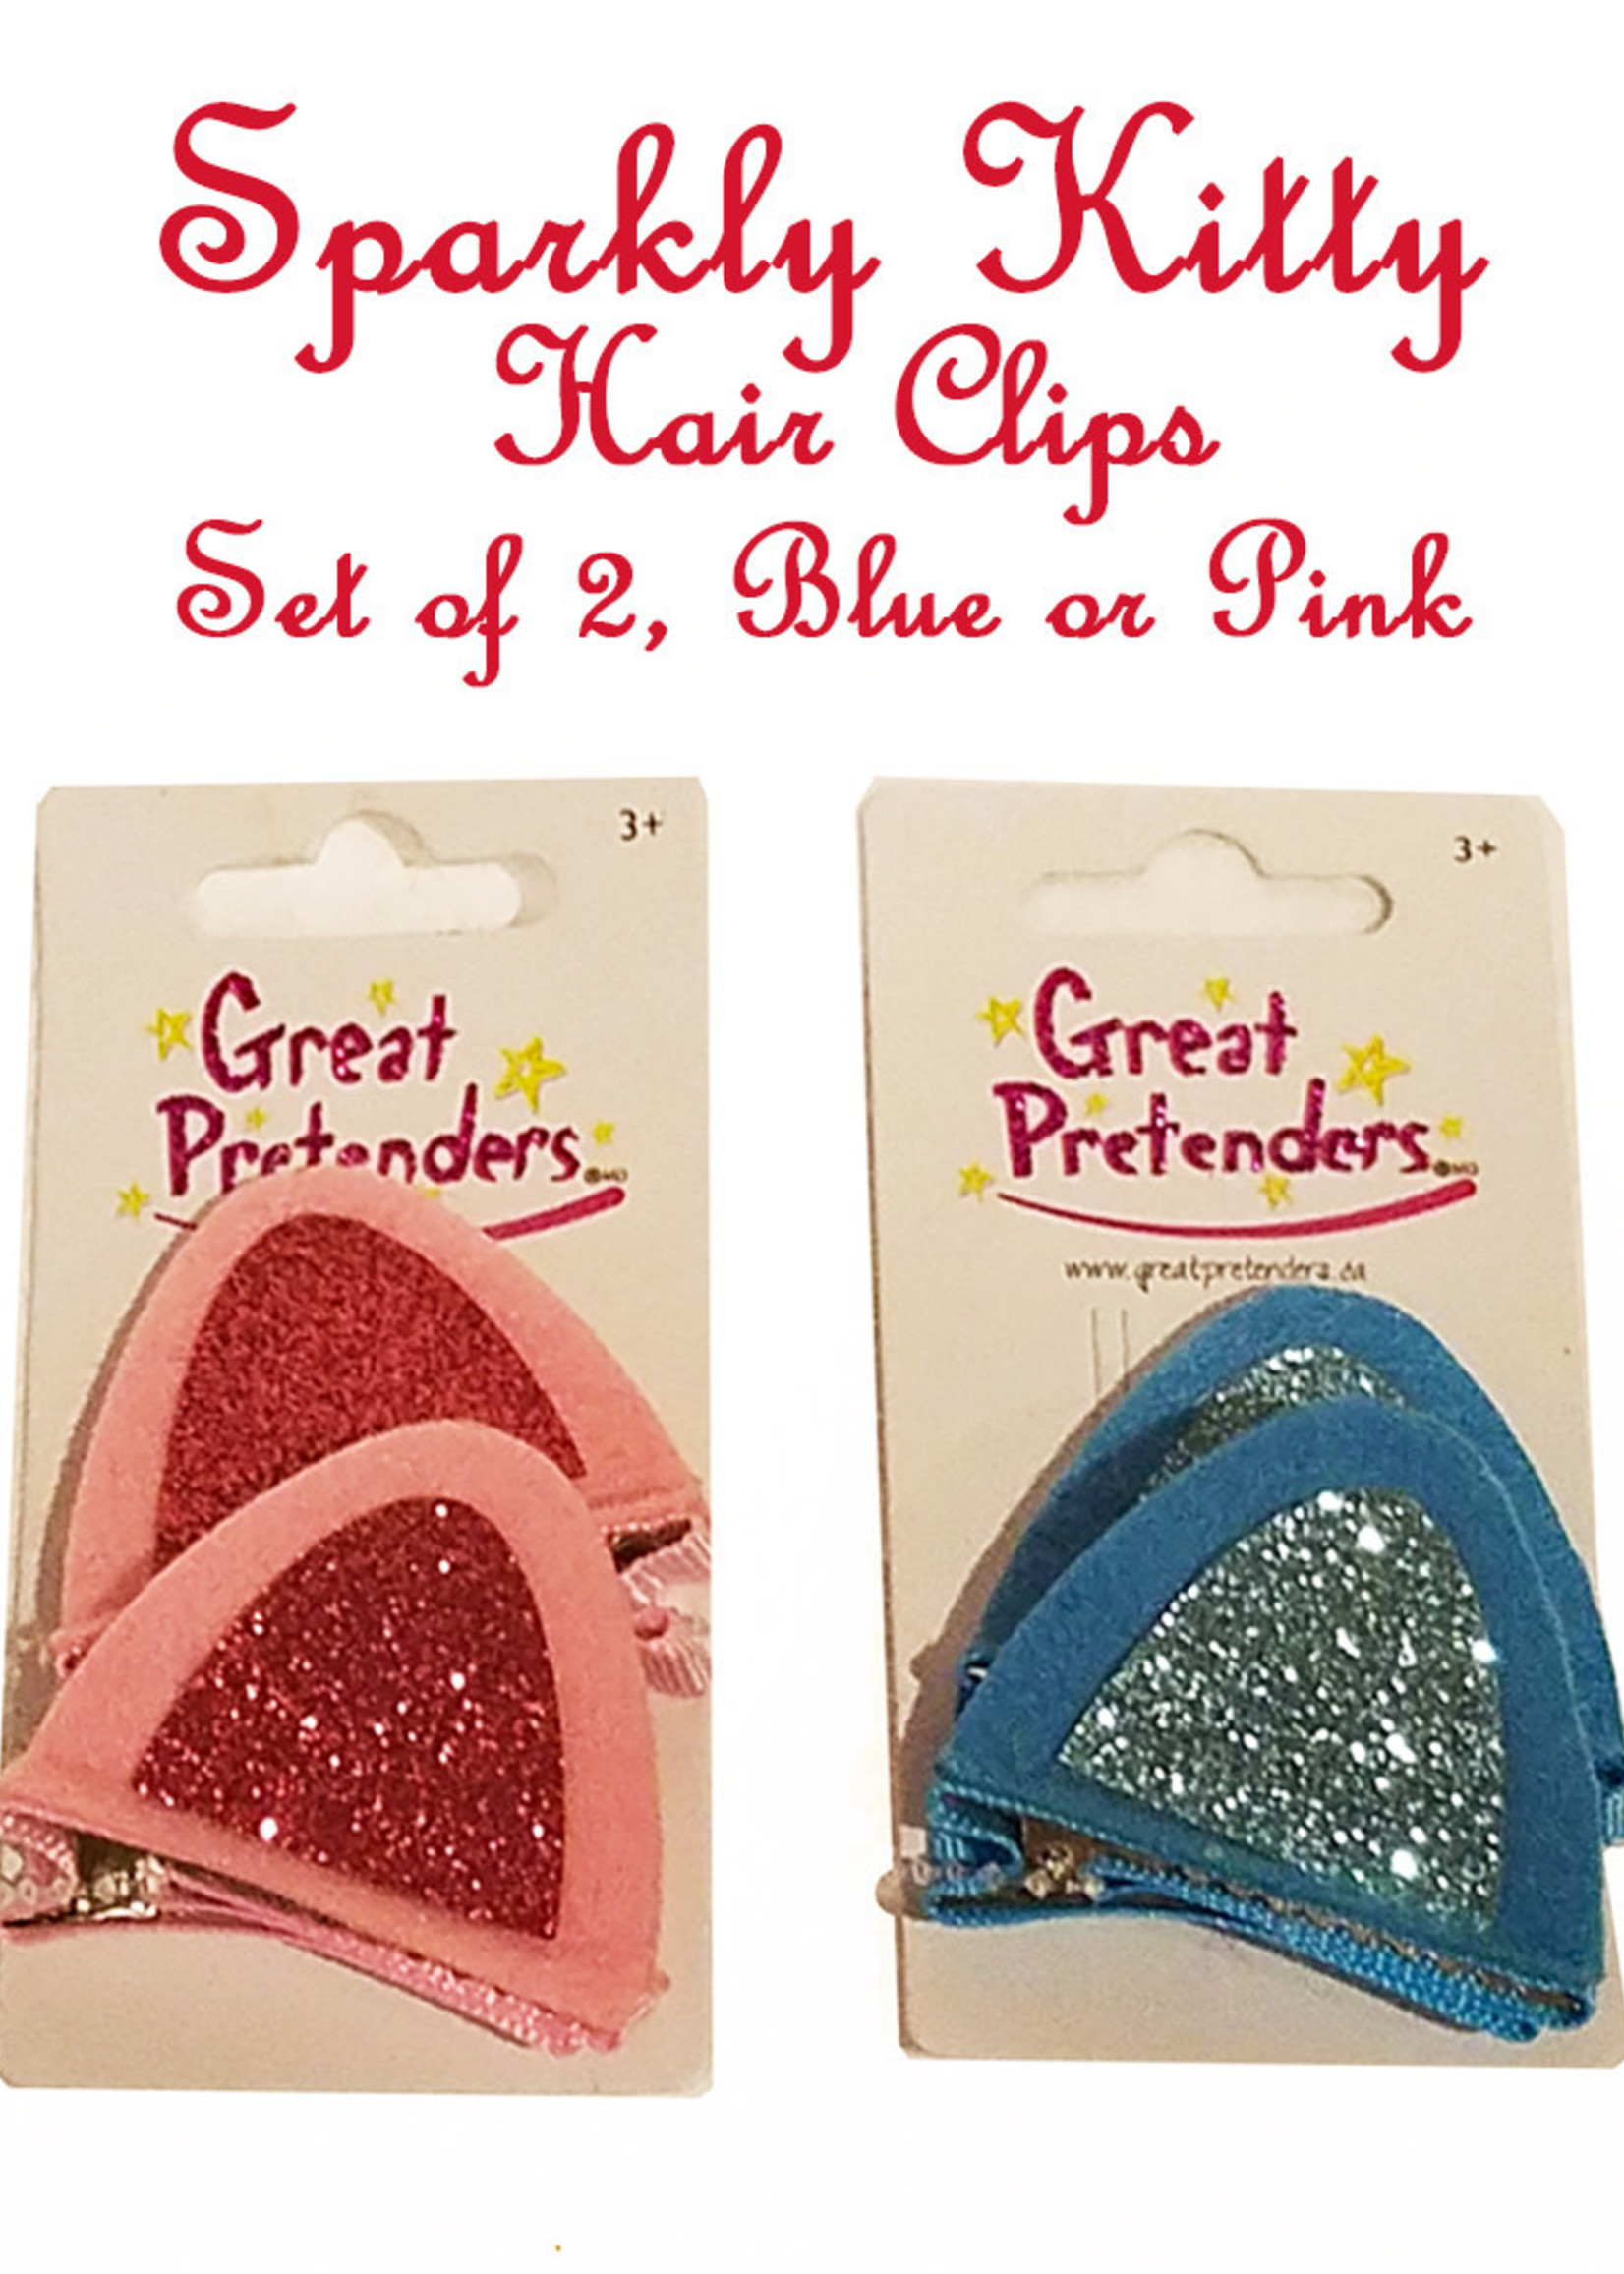 Great Pretenders Sparkly Kitty Ear Hair Clips